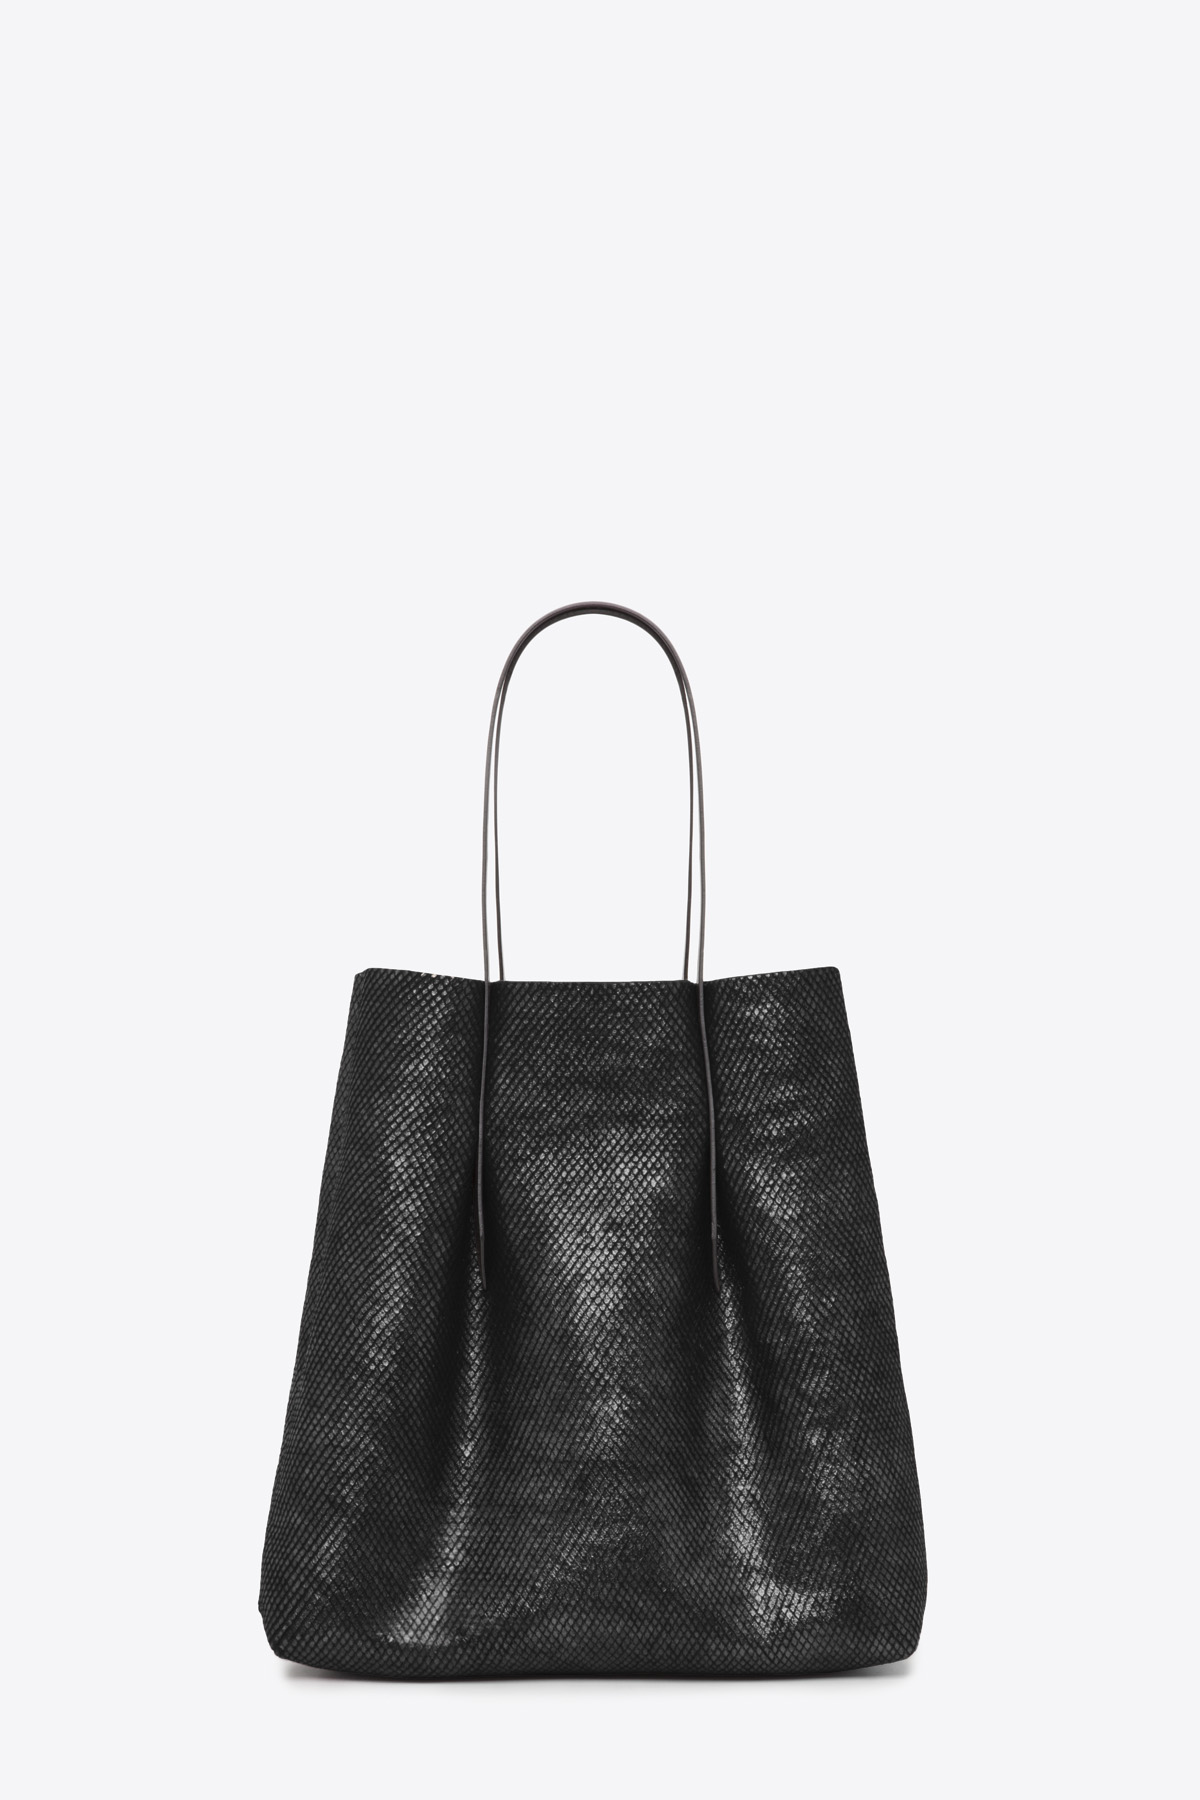 dclr006-shoppingbag-a23-backsnakeblack-front